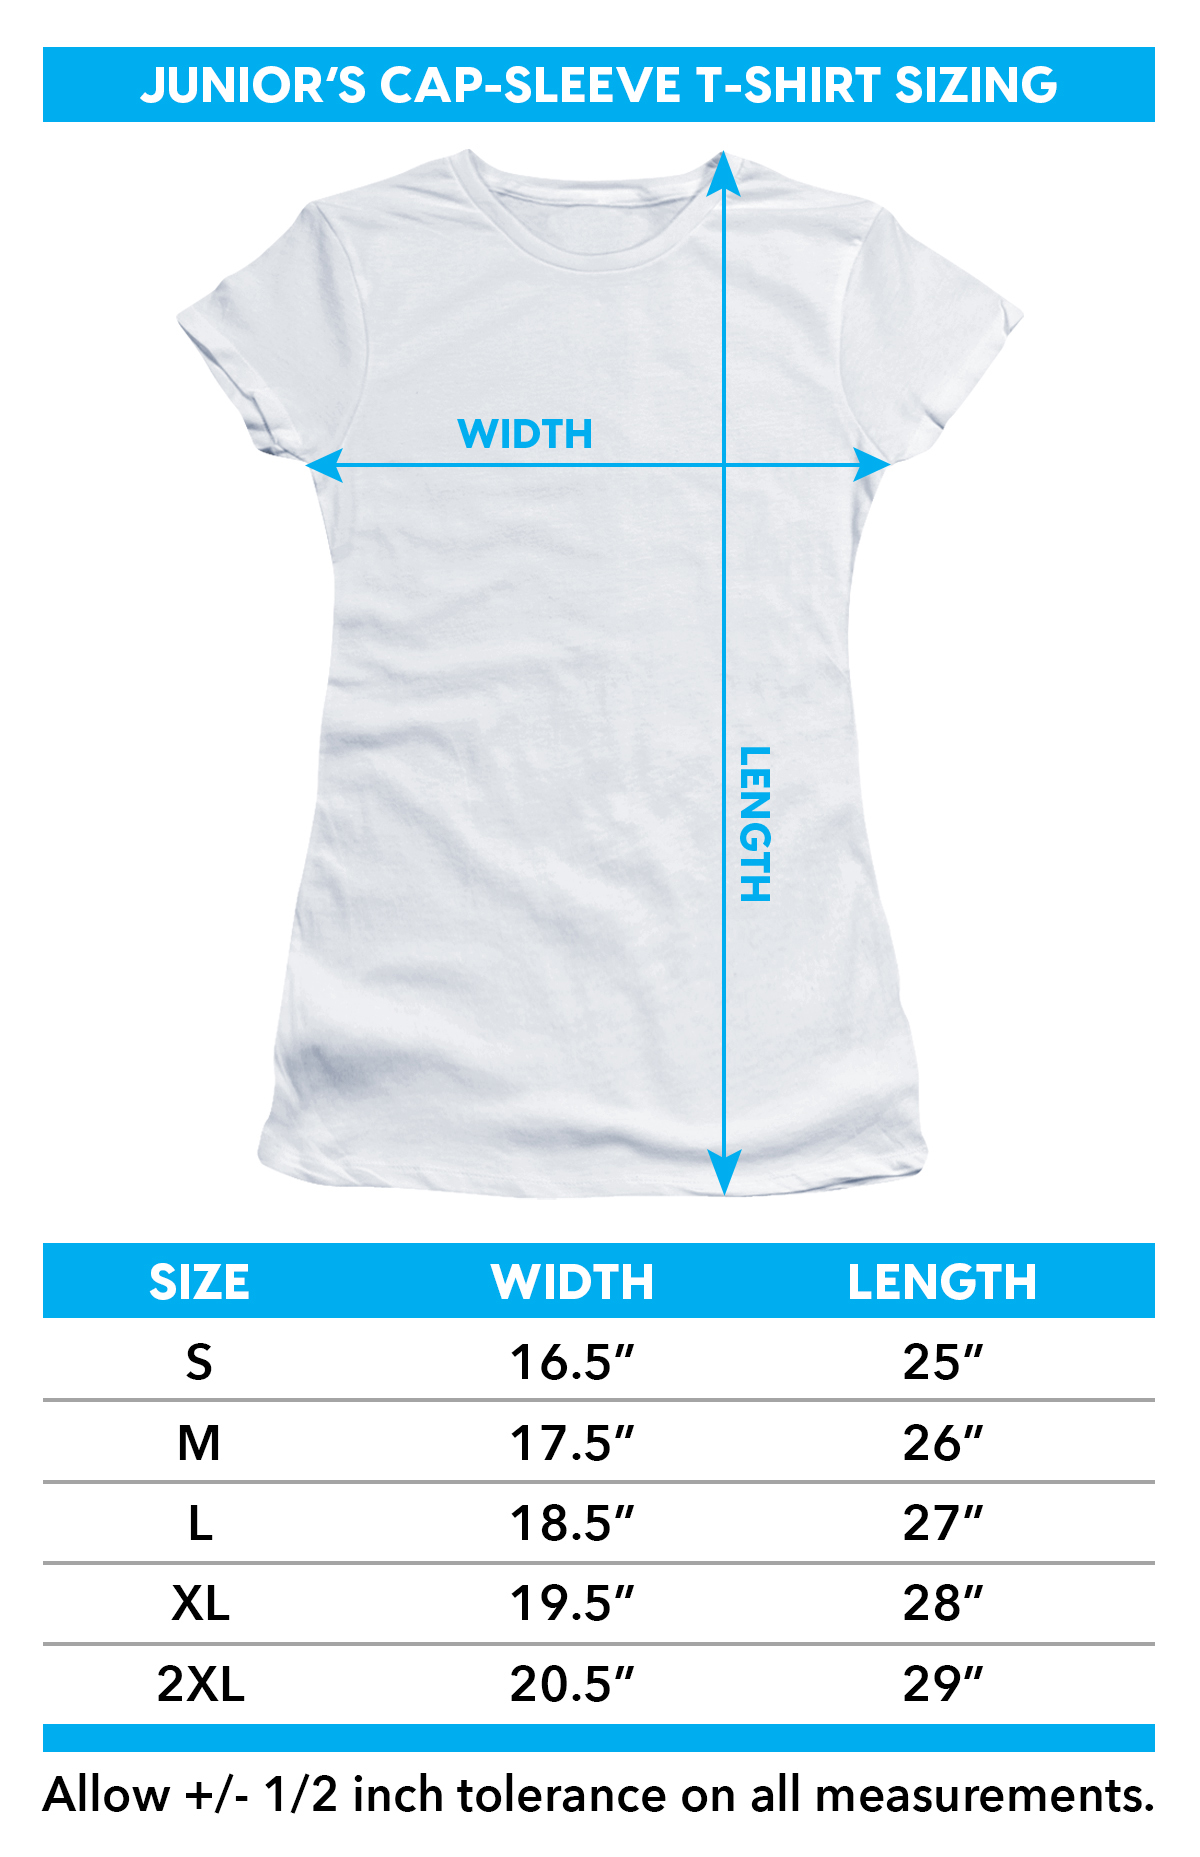 Girls sizing chart for Bleach Girls T-Shirt - Legacy TRV-BLCH113-JS